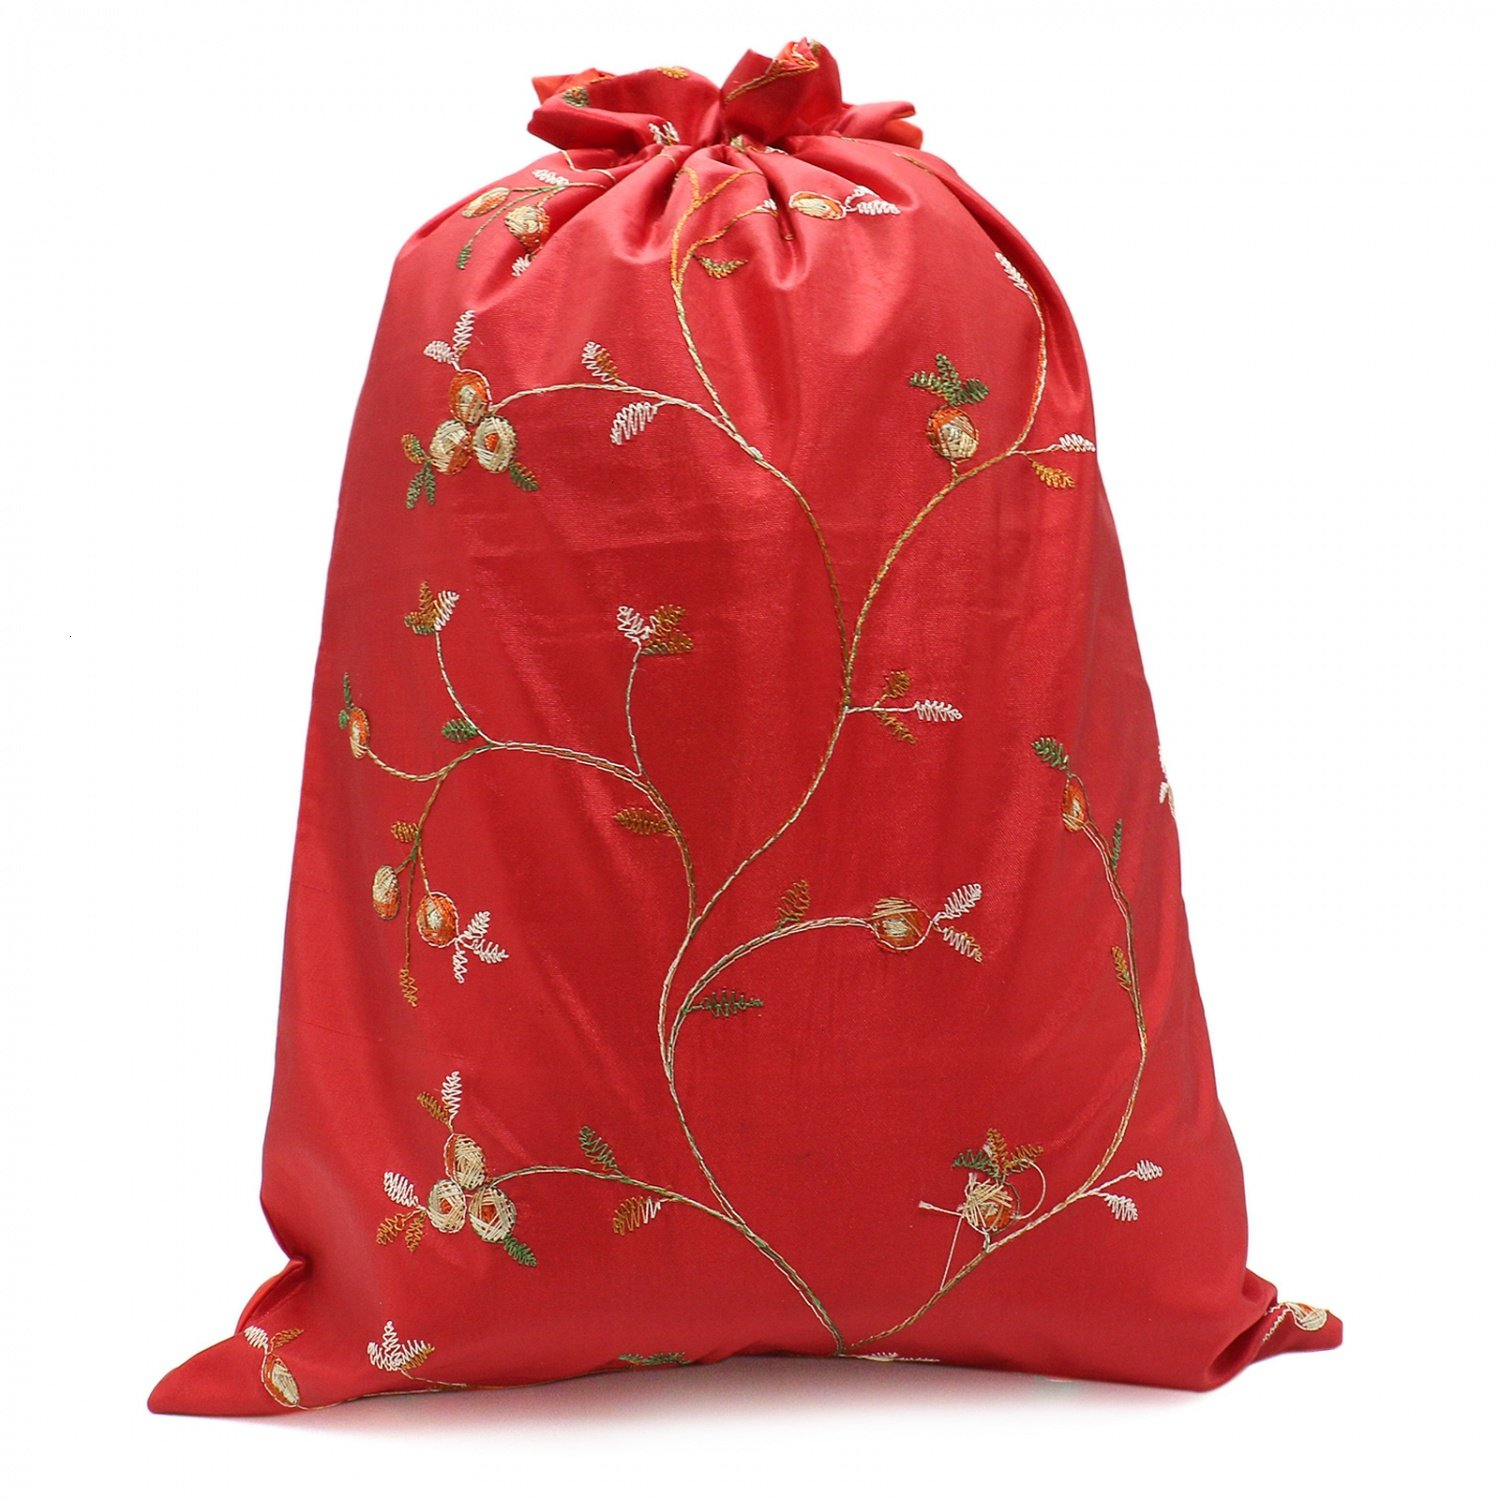 Buorsa Flower Design Embroidered Silk Jacquard Travel Bag Underwear Cloth Shoe Bags Pouch Purse , Set of 3--- 14'' x 11''(L x W) by Buorsa (Image #5)